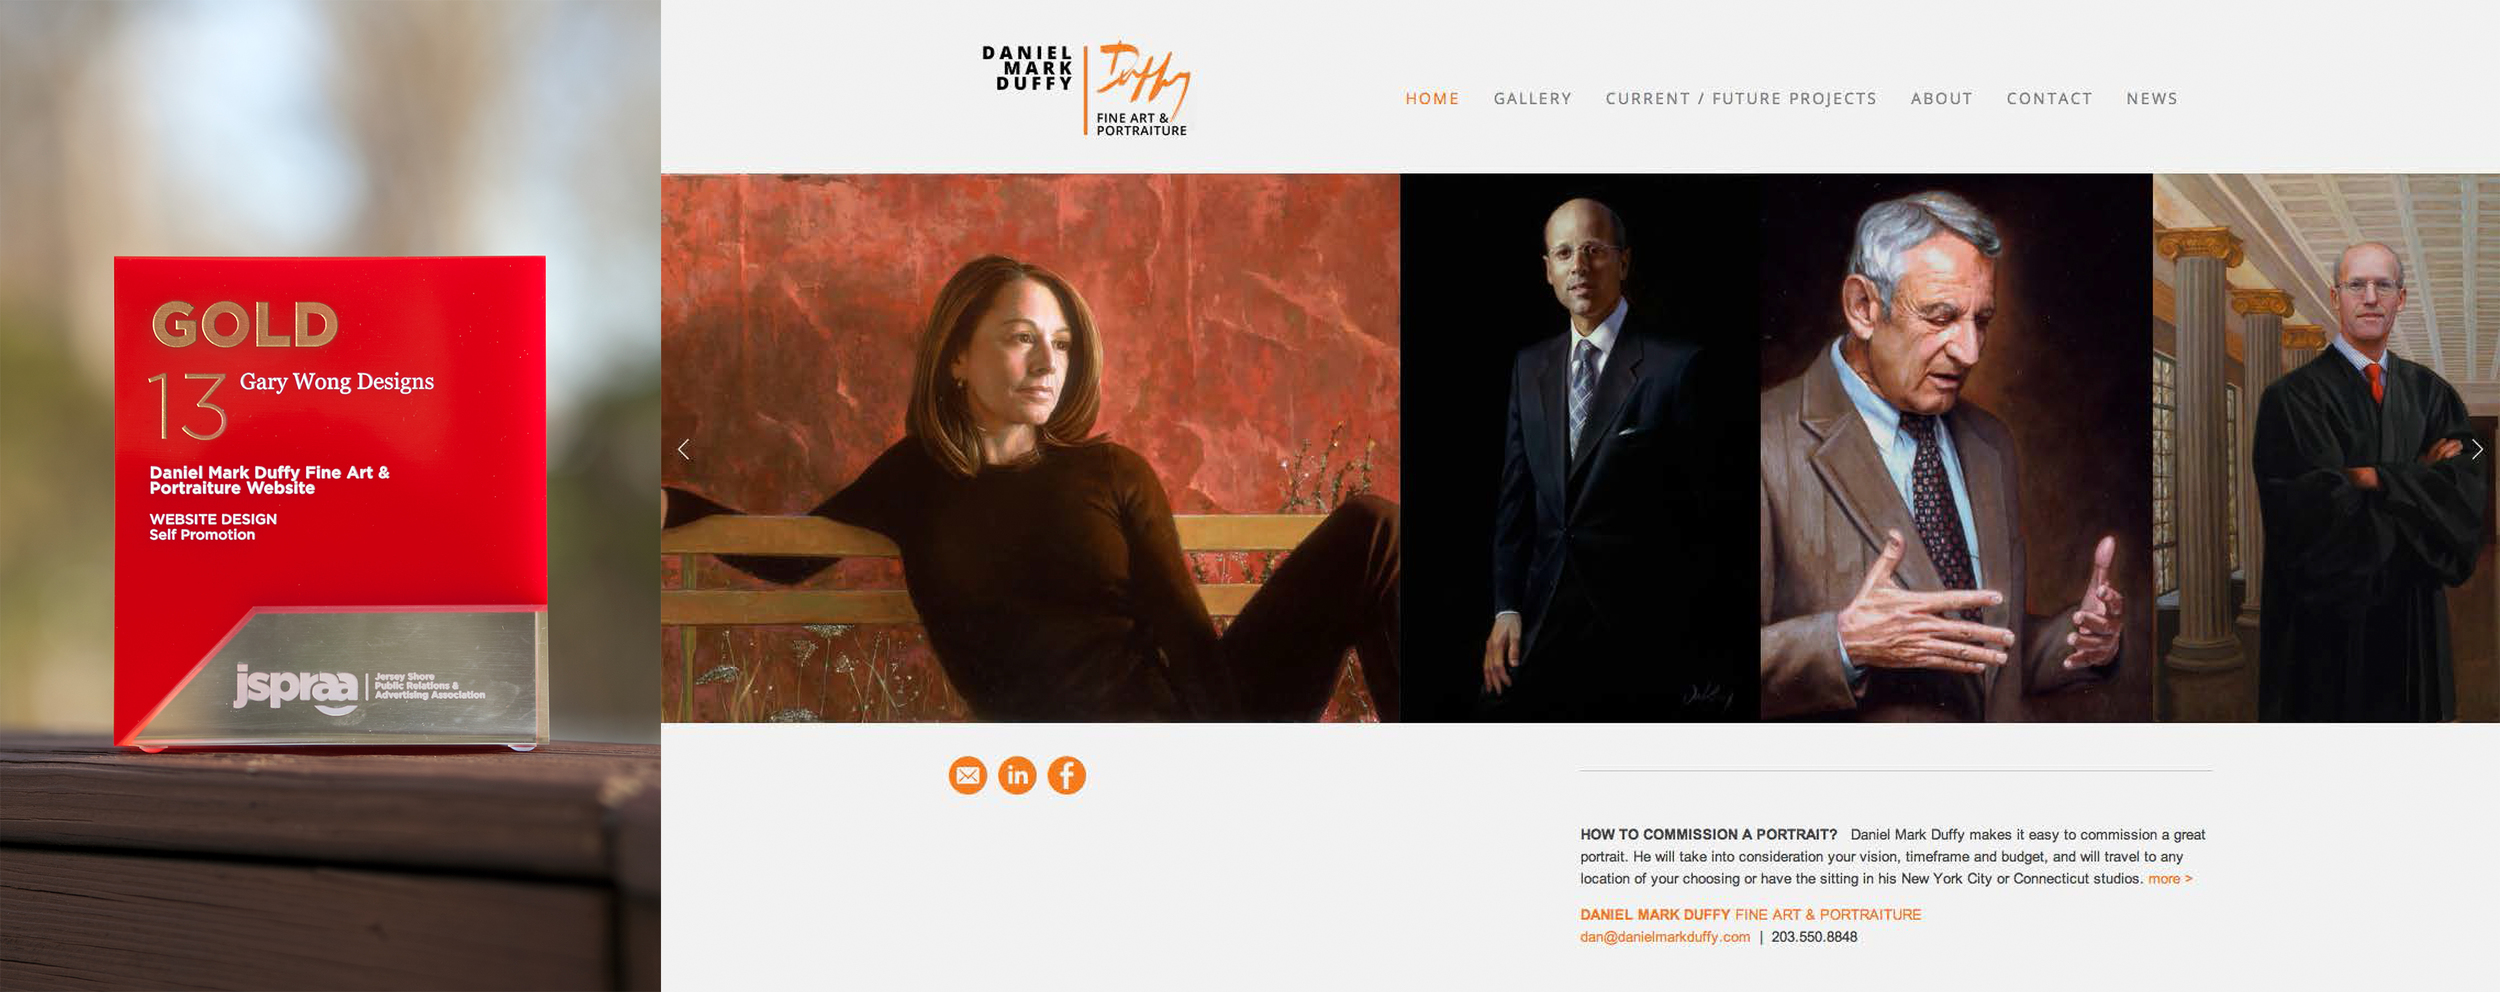 Client: Daniel Mark Duffy Fine Artist Category: Website Design, Self Promotion